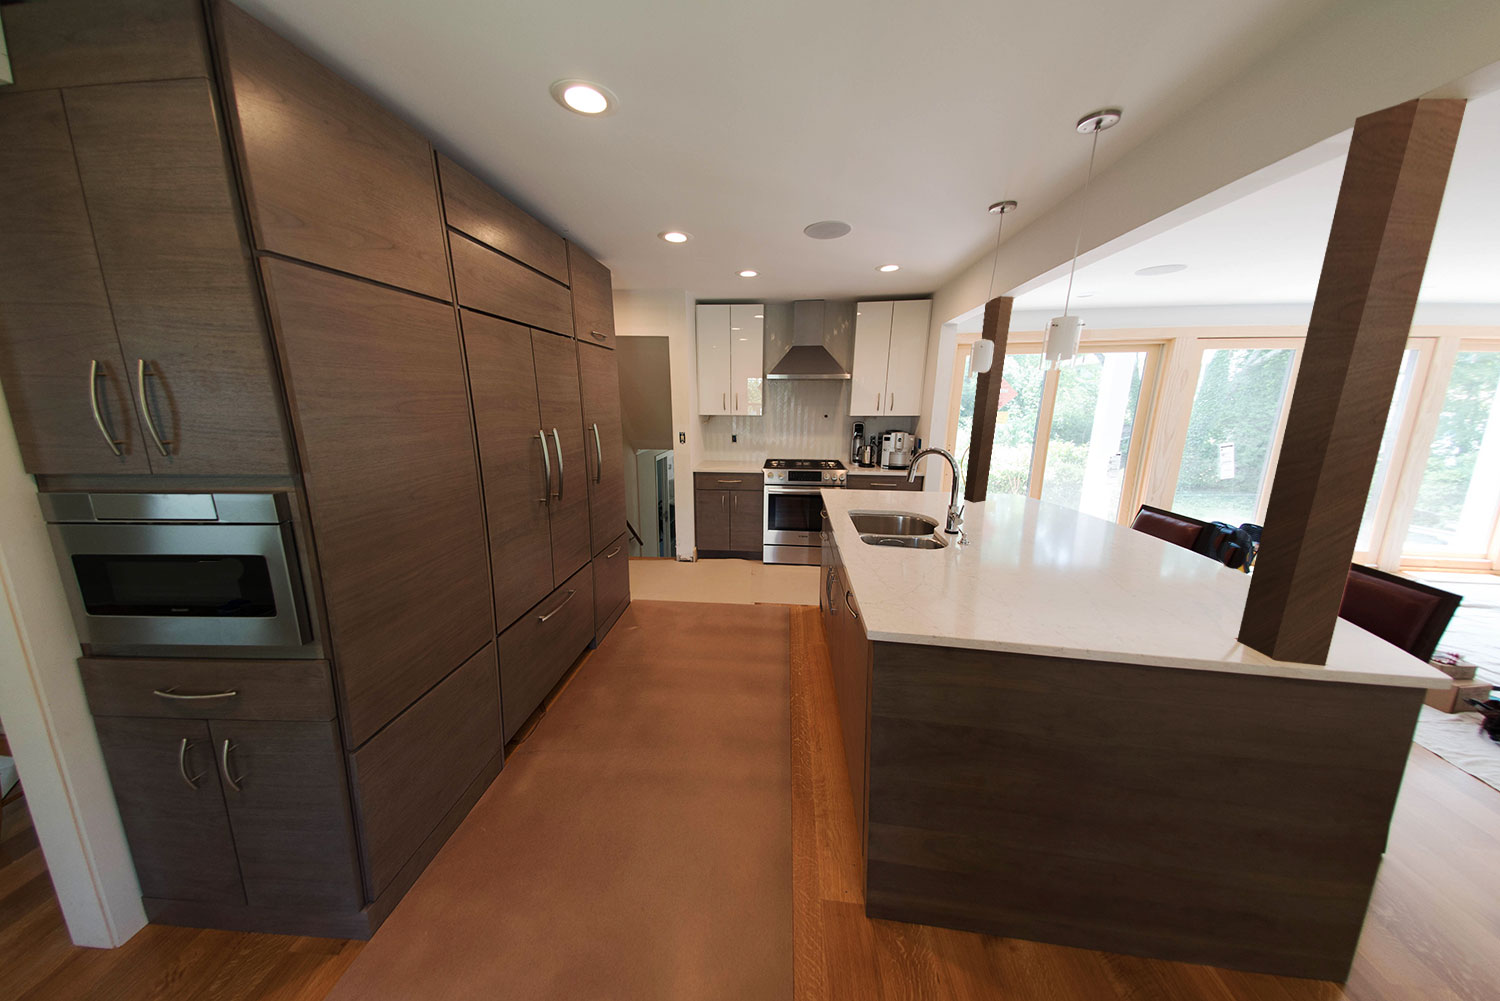 kitchen and bath design center how to decorate counter space showrooms princeton nj  wow blog